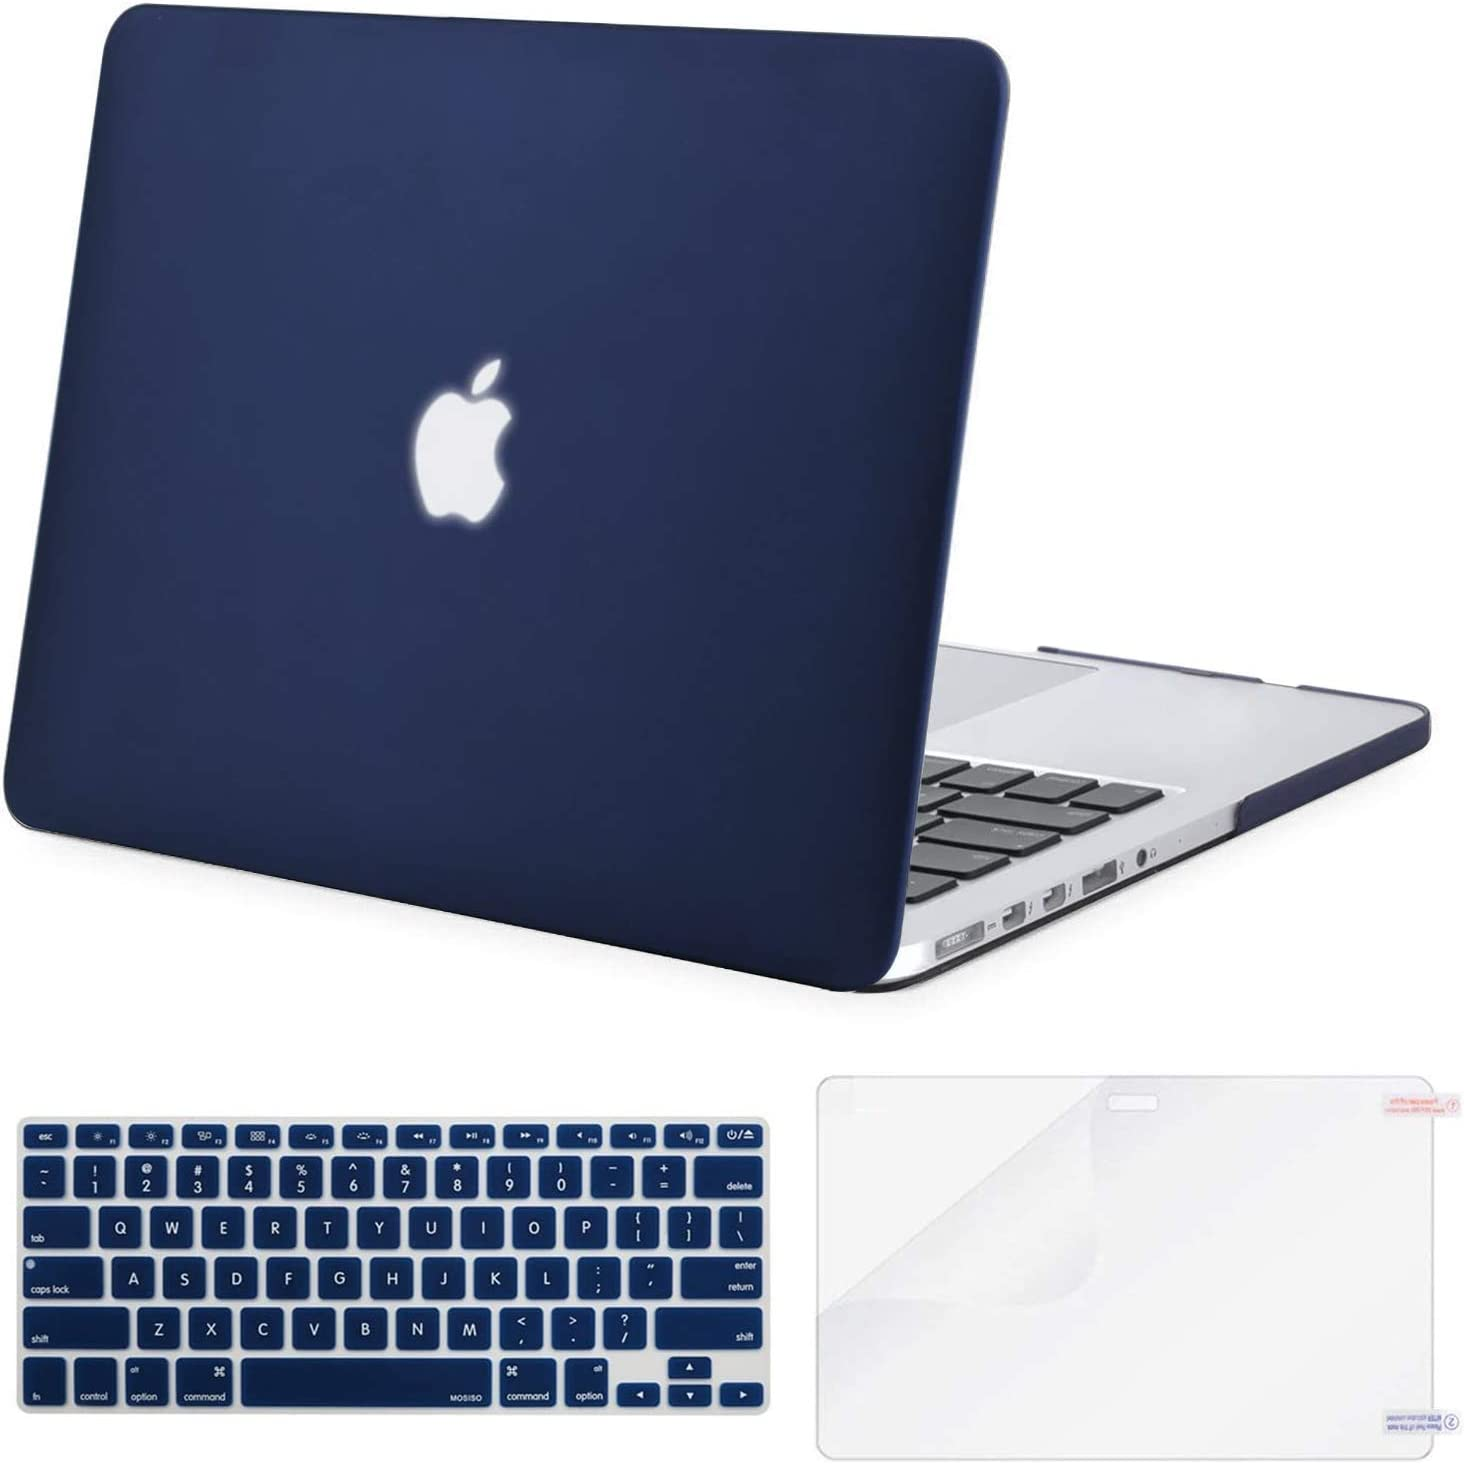 MOSISO Plastic Hard Shell Case & Keyboard Cover & Screen Protector Only Compatible with Older Version MacBook Pro Retina 15 inch (Model: A1398, Release 2015 - end 2012), Navy Blue